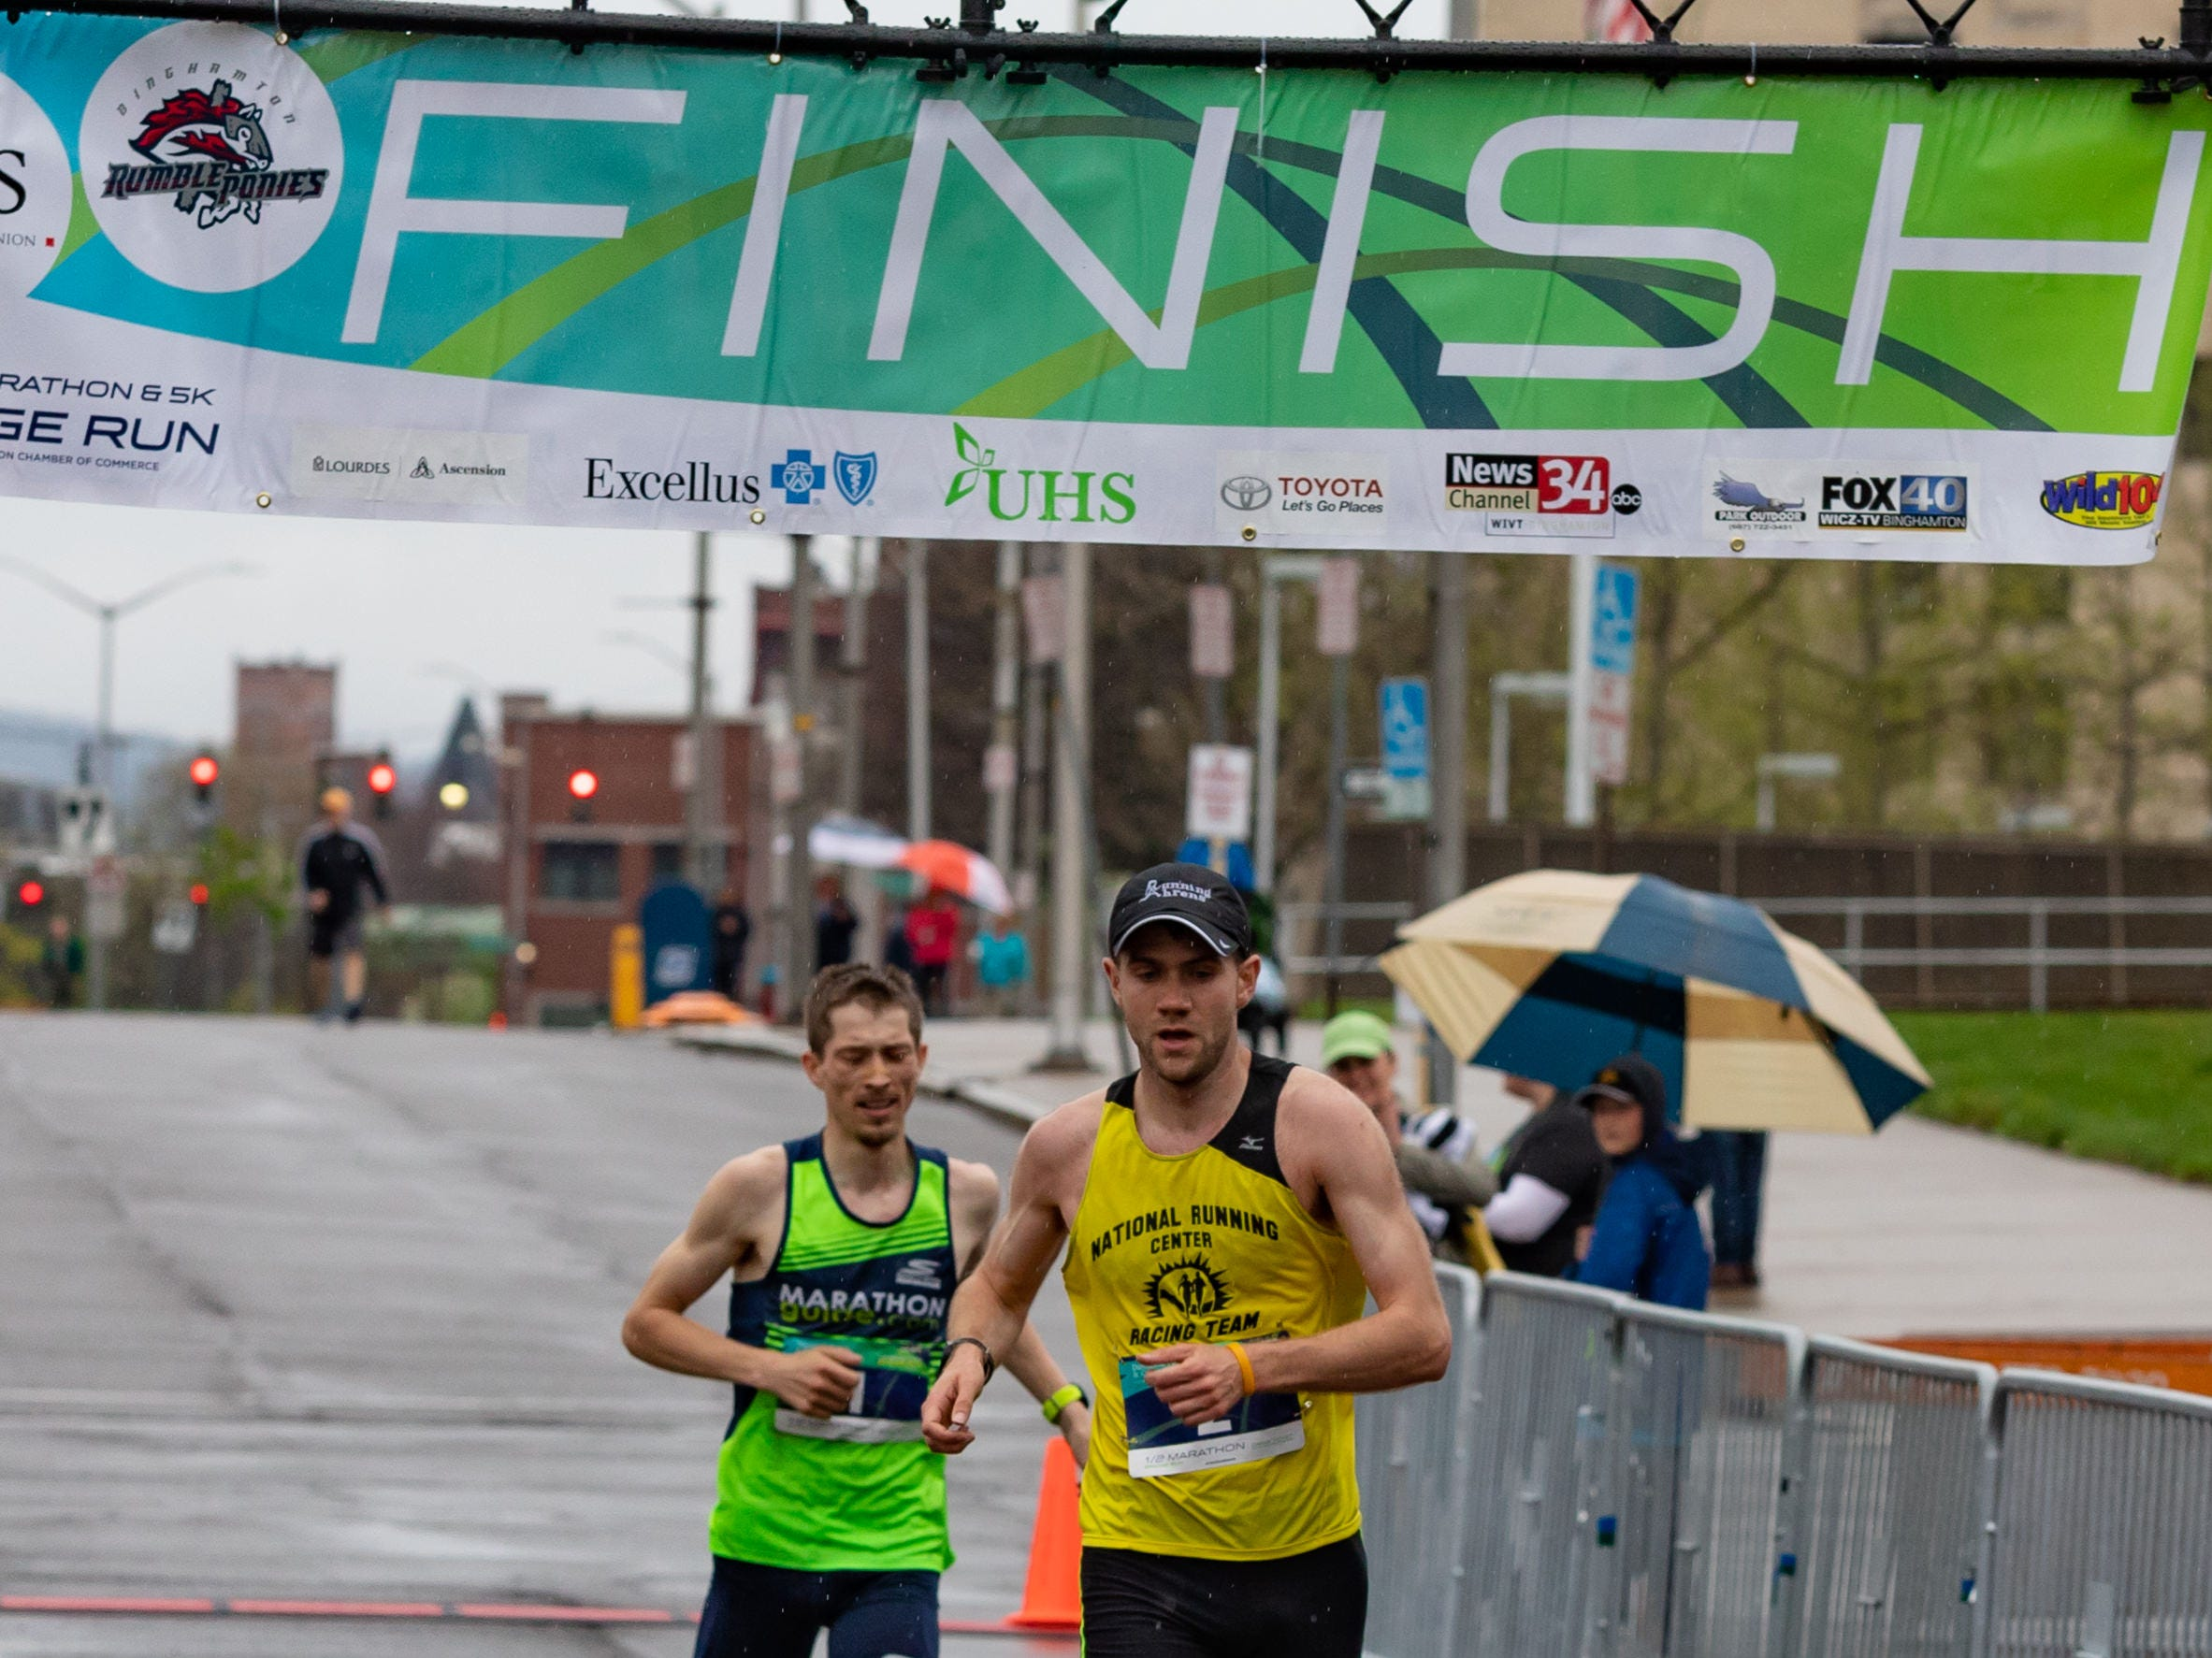 2018: First Place finisher Rob Ahrens edged out Bryan Morseman with a time of 1:10:48 in the Binghamton Bridge Run Half Marathon Sunday Morning